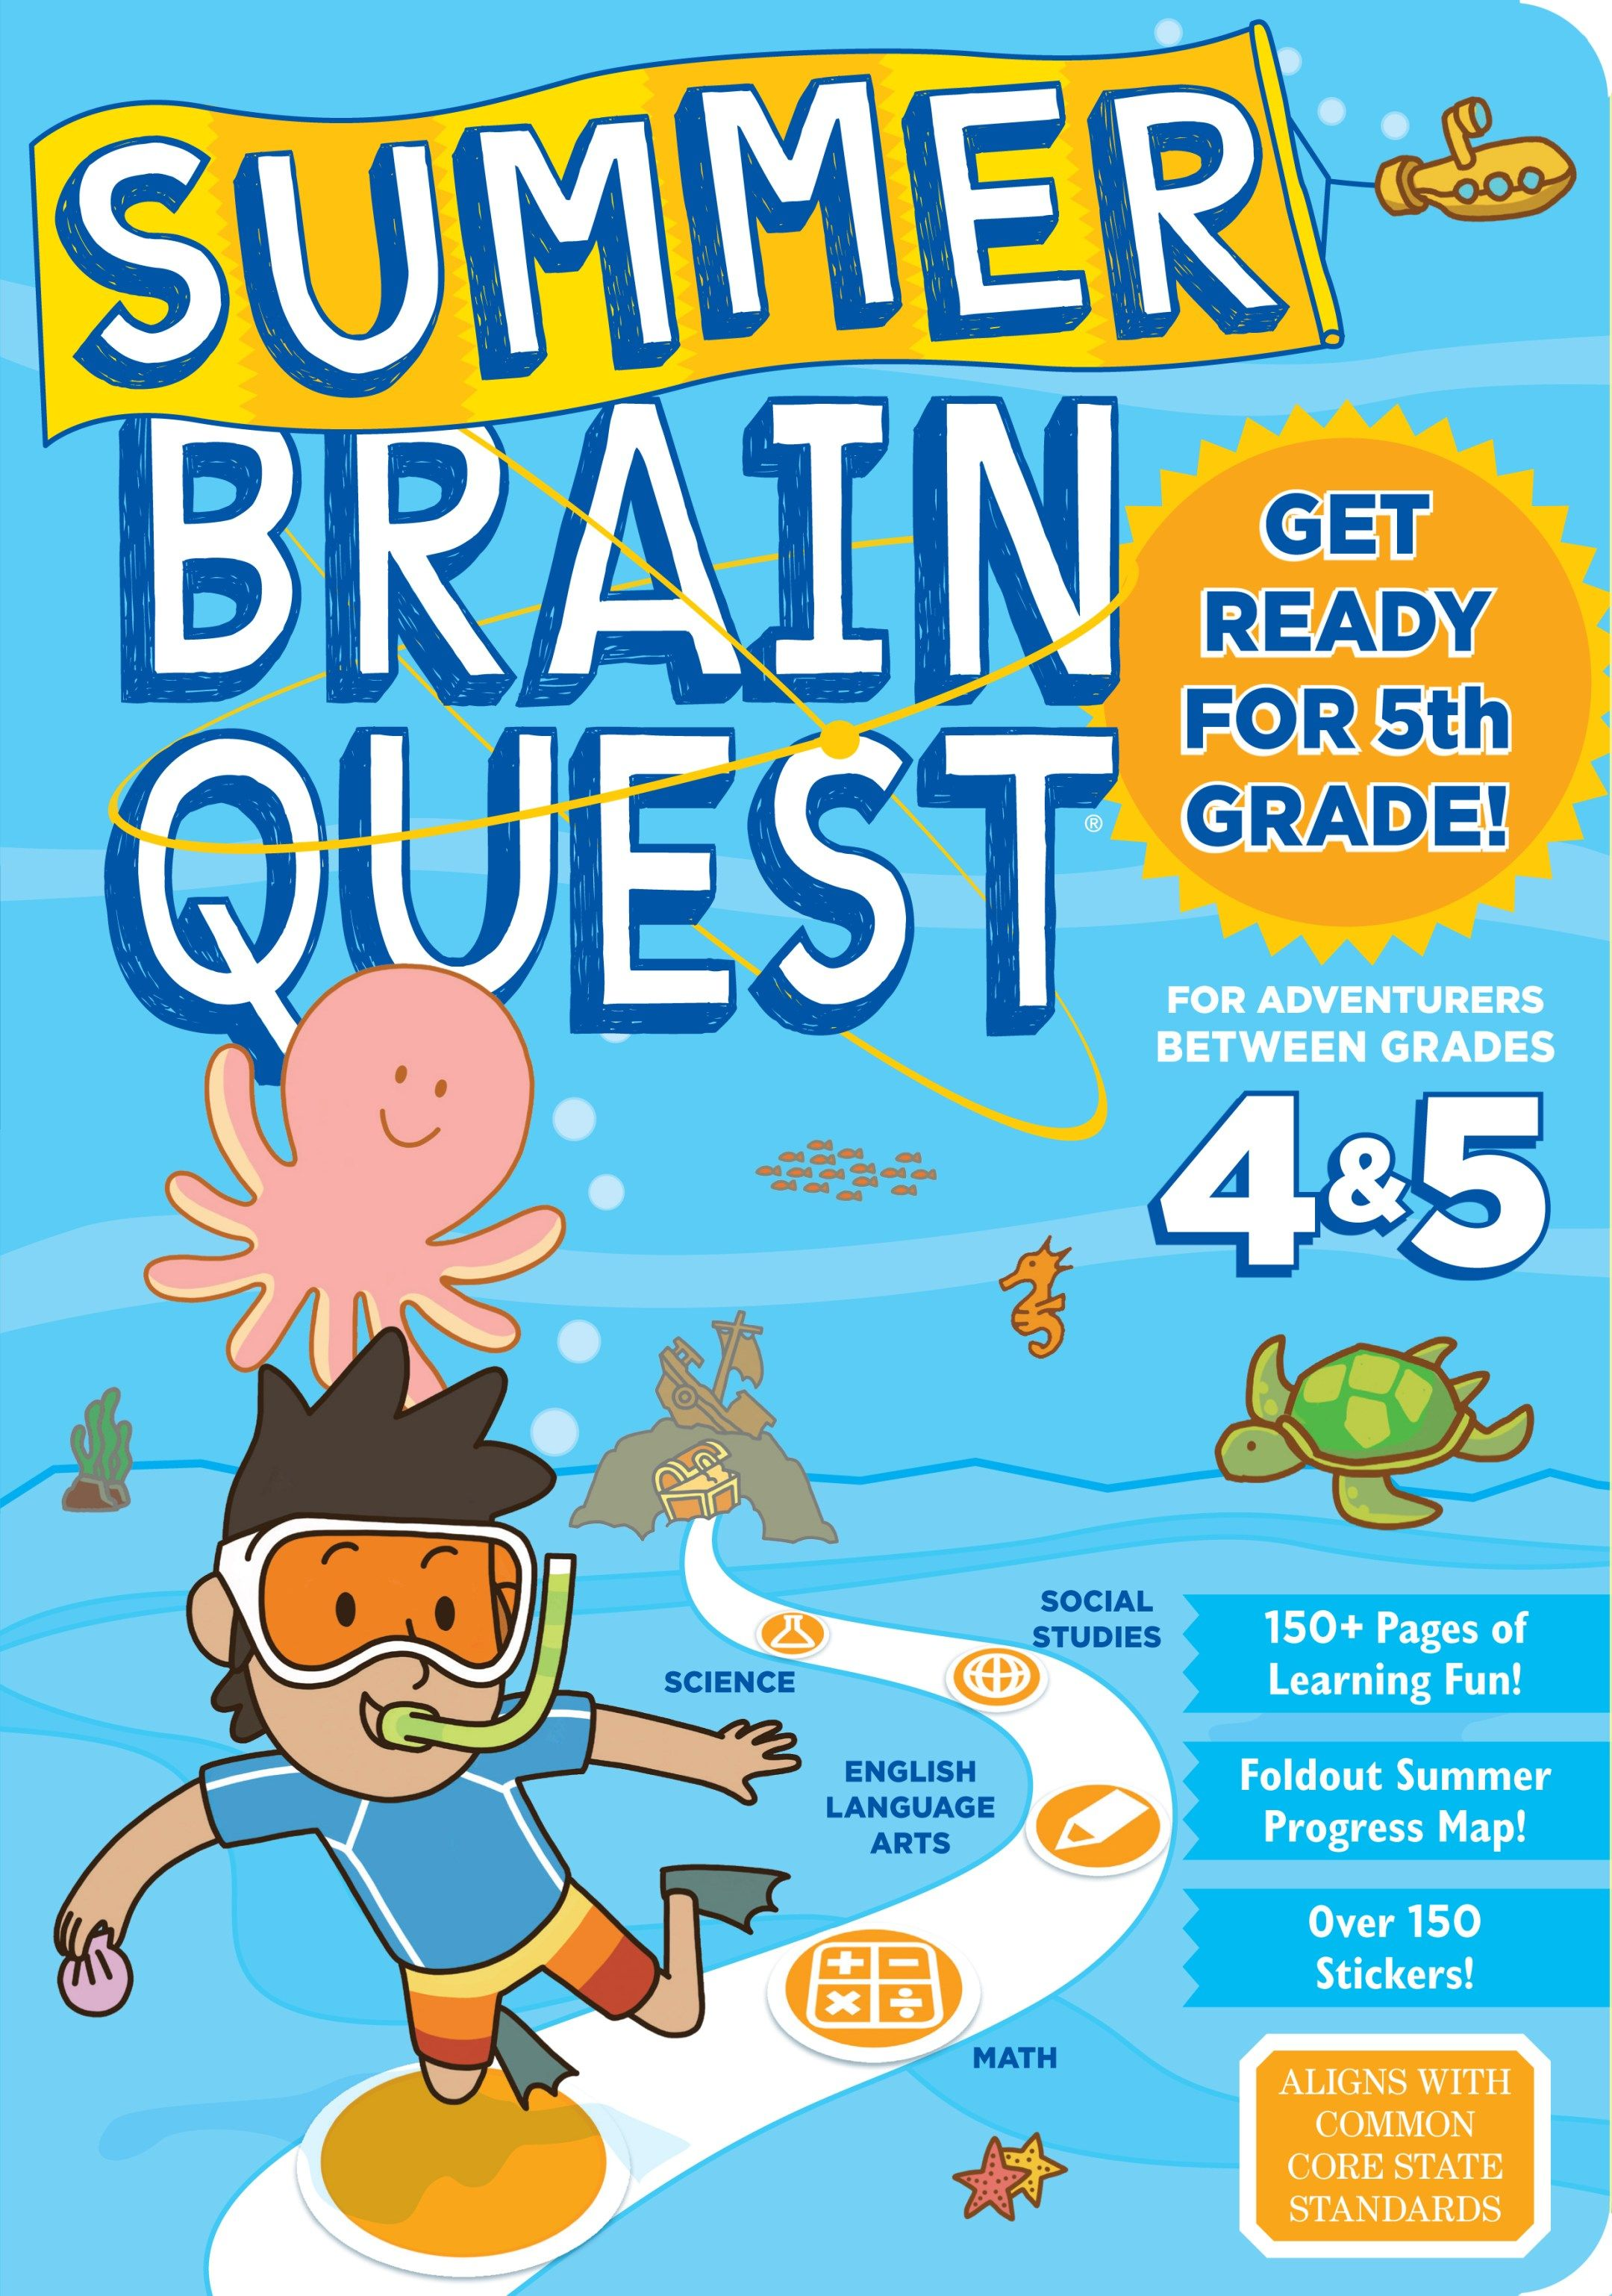 Pin by Toni Rutledge on homeschooling | Pinterest | Brain, Phonics ...